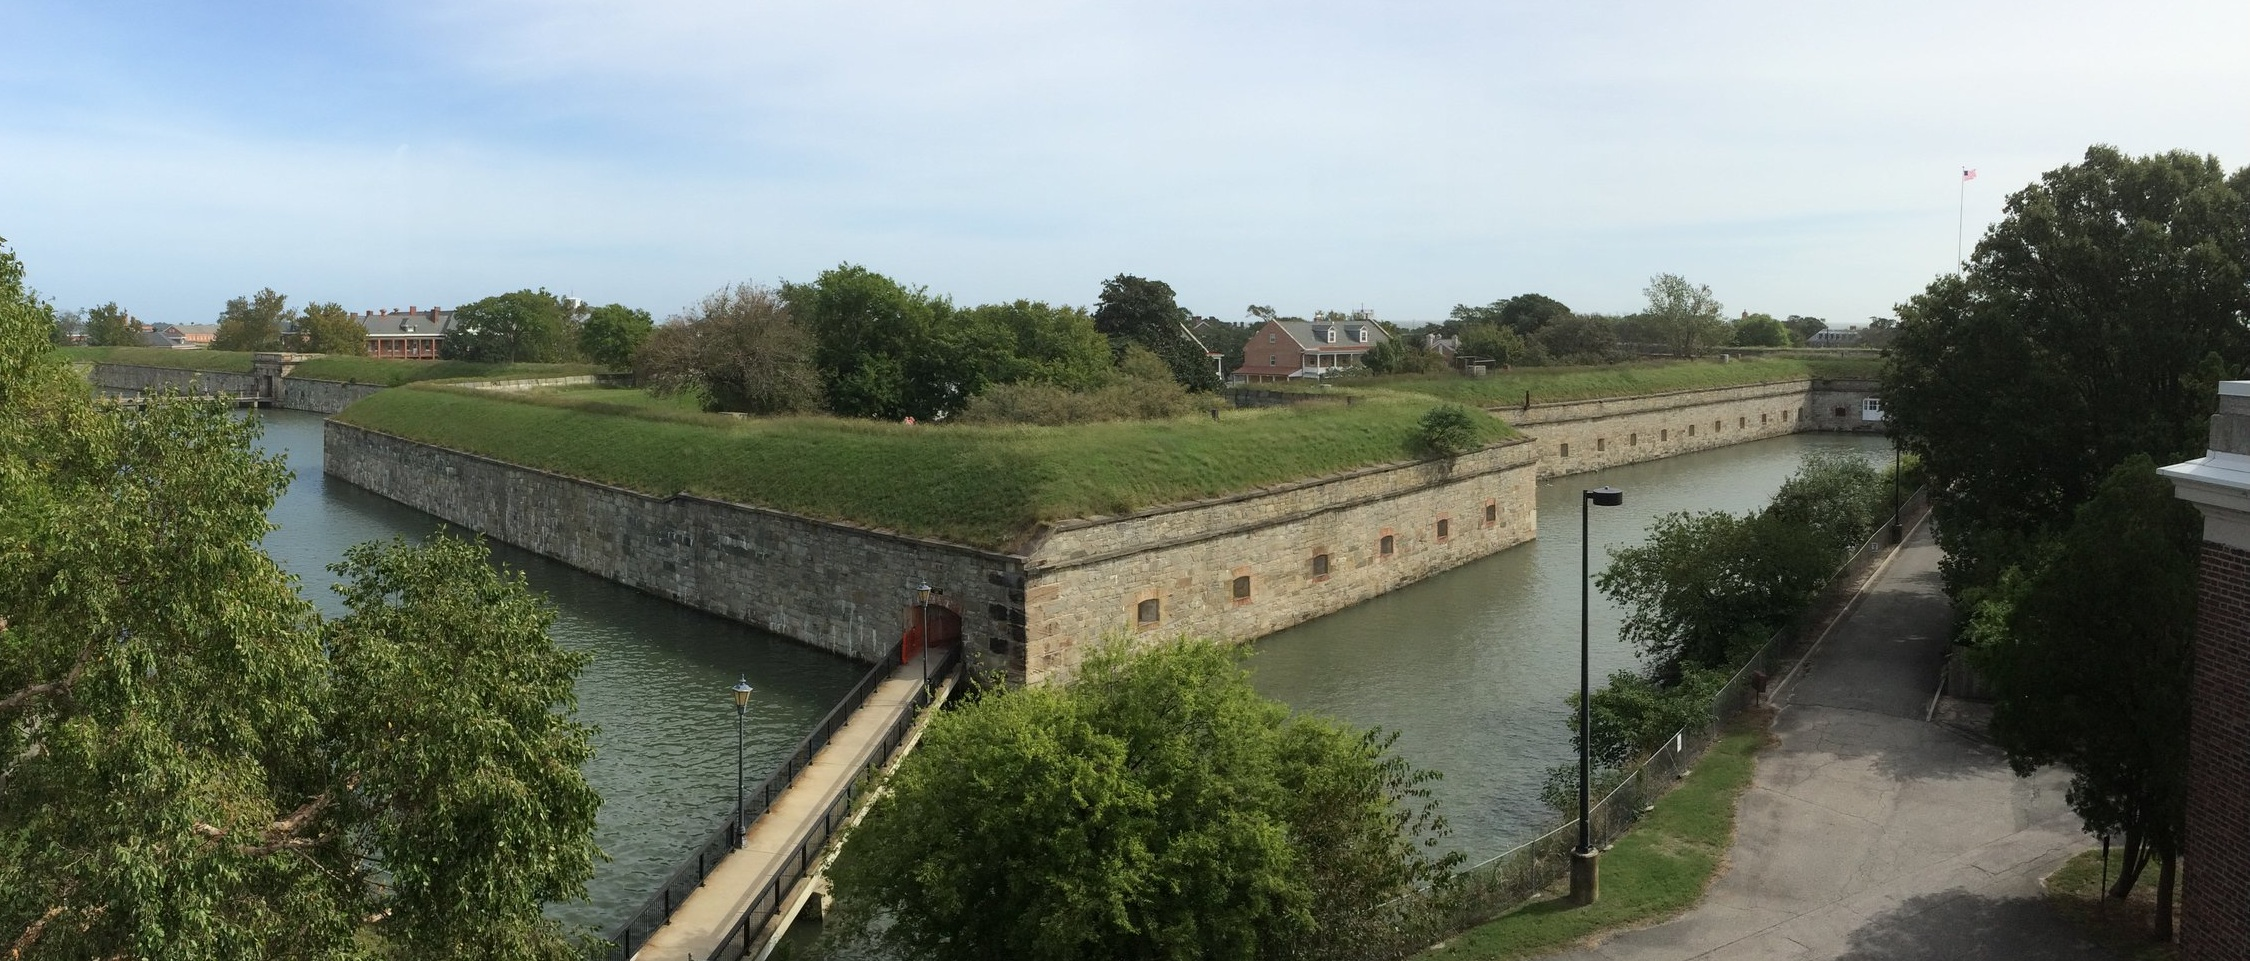 View of the Fort from roof of the new Visitor Center